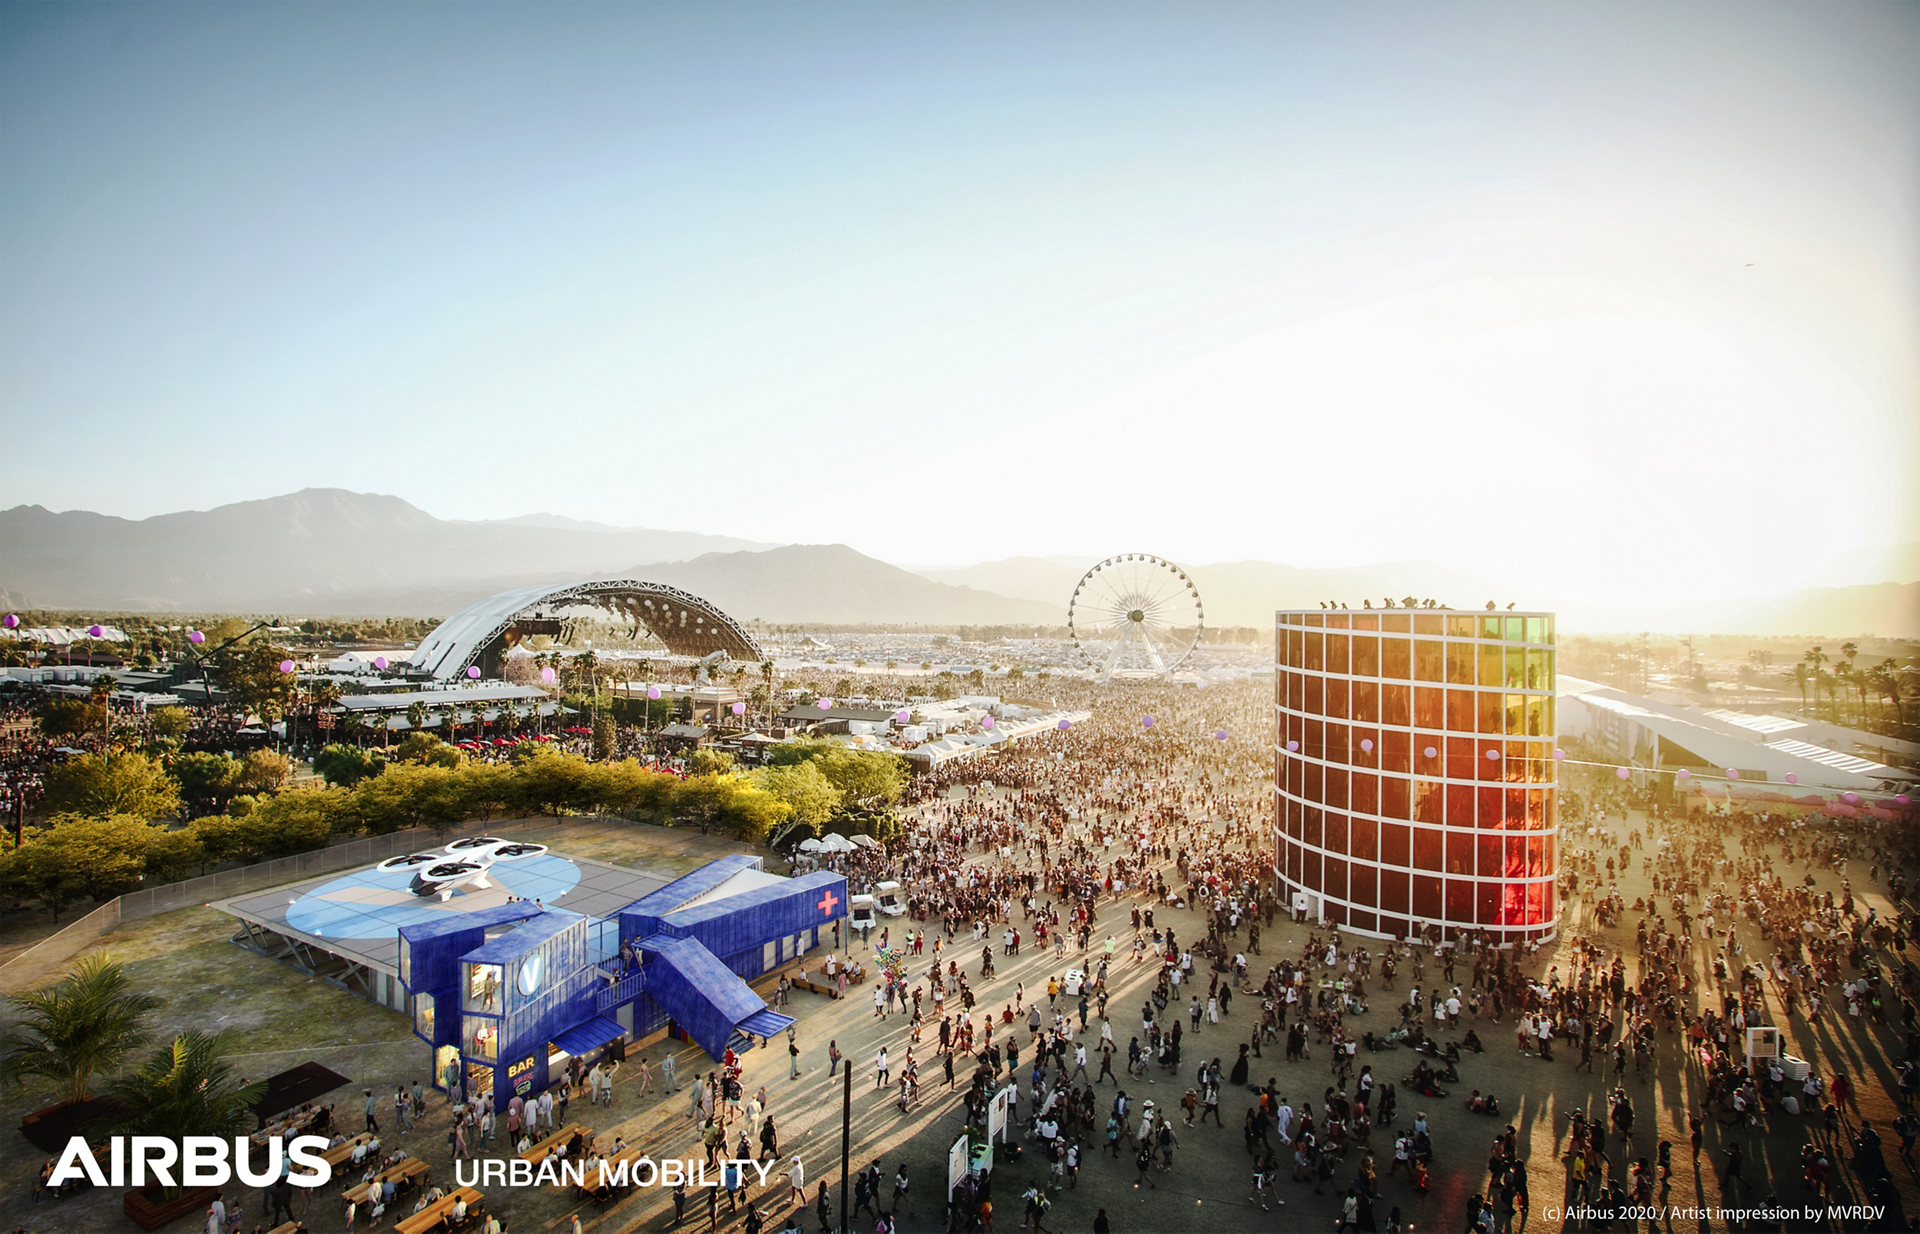 Our VertiPad concept facilitates access to temporary events, such as Coachella Festival in Indio, California, USA. This concept is for illustrative purposes only and not representative of an actual project with the city.